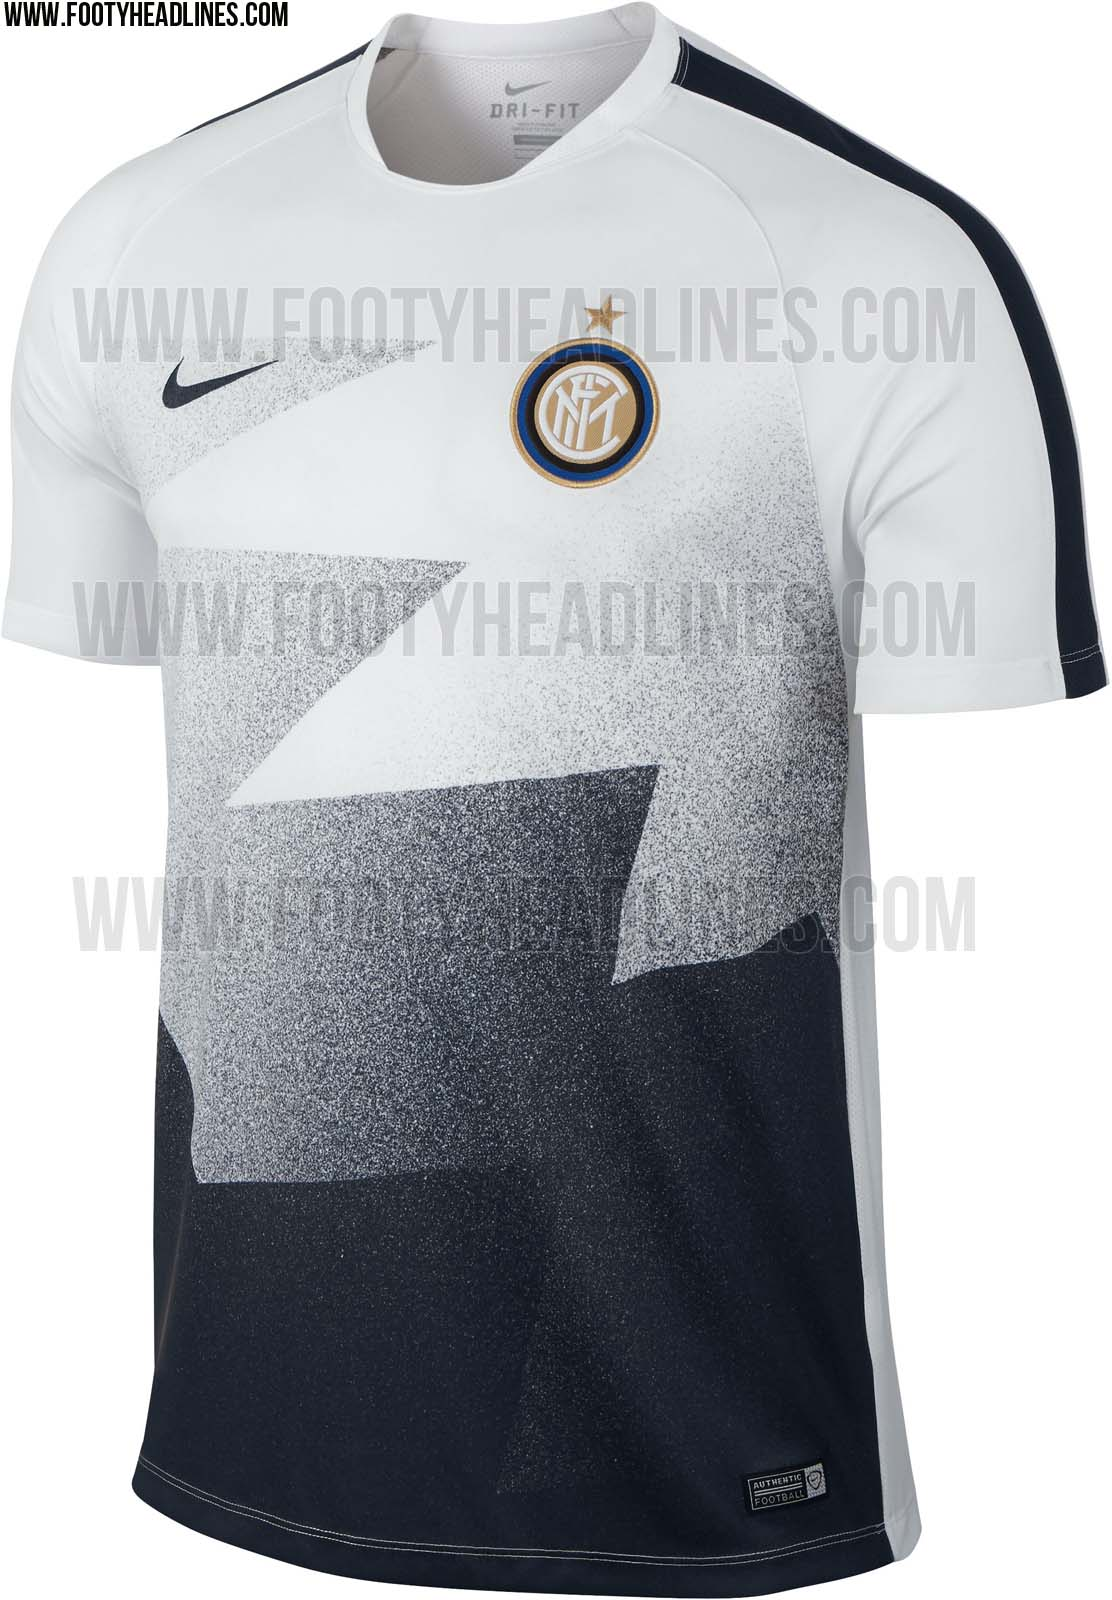 Inter 15-16 Pre-Match and Training Shirts Released - Footy